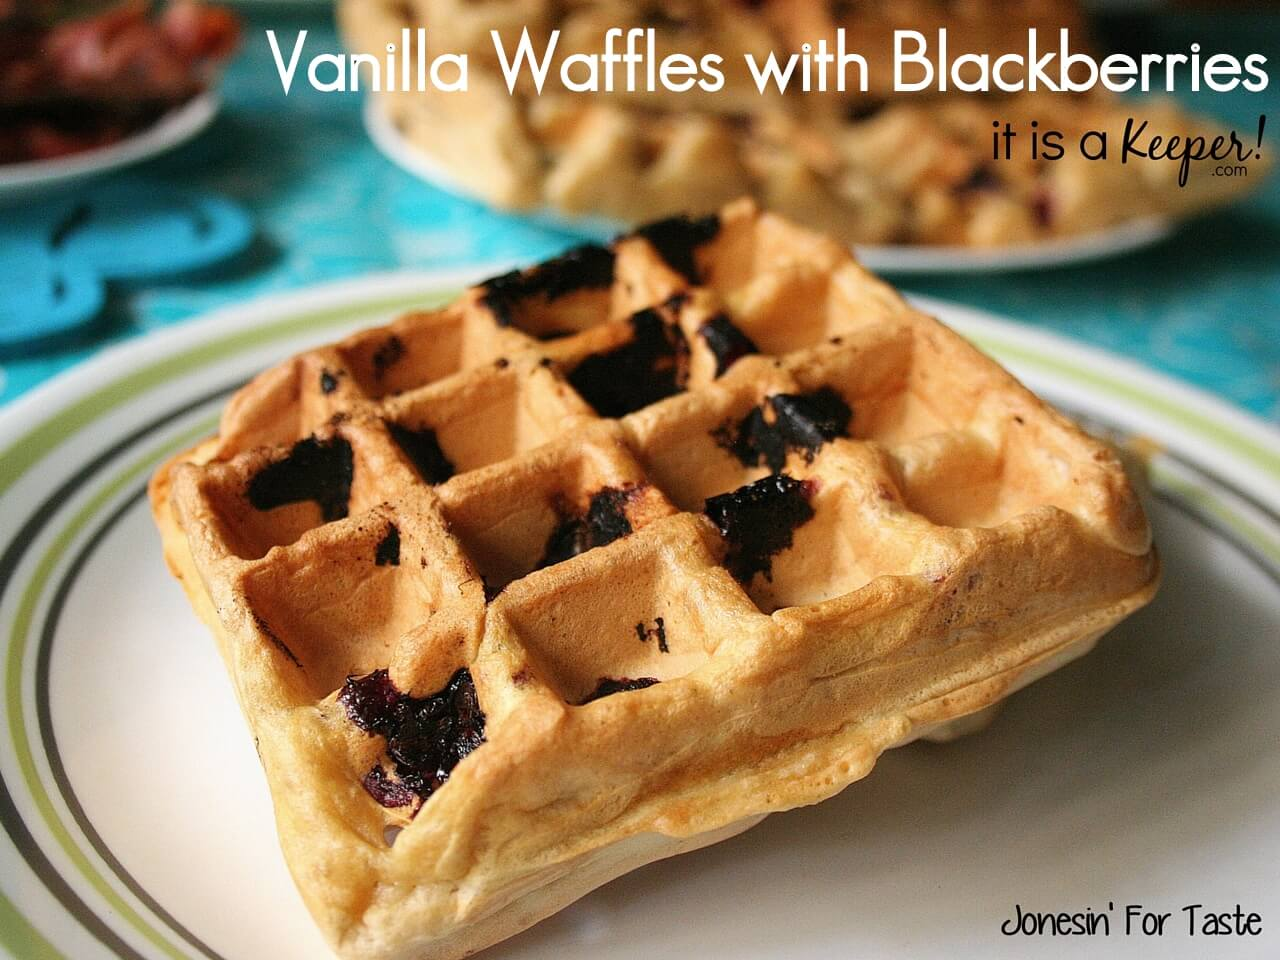 Vanilla Waffles with Blackberries make breakfast fun again and freshen up simple vanilla waffles with juicy blackberries.